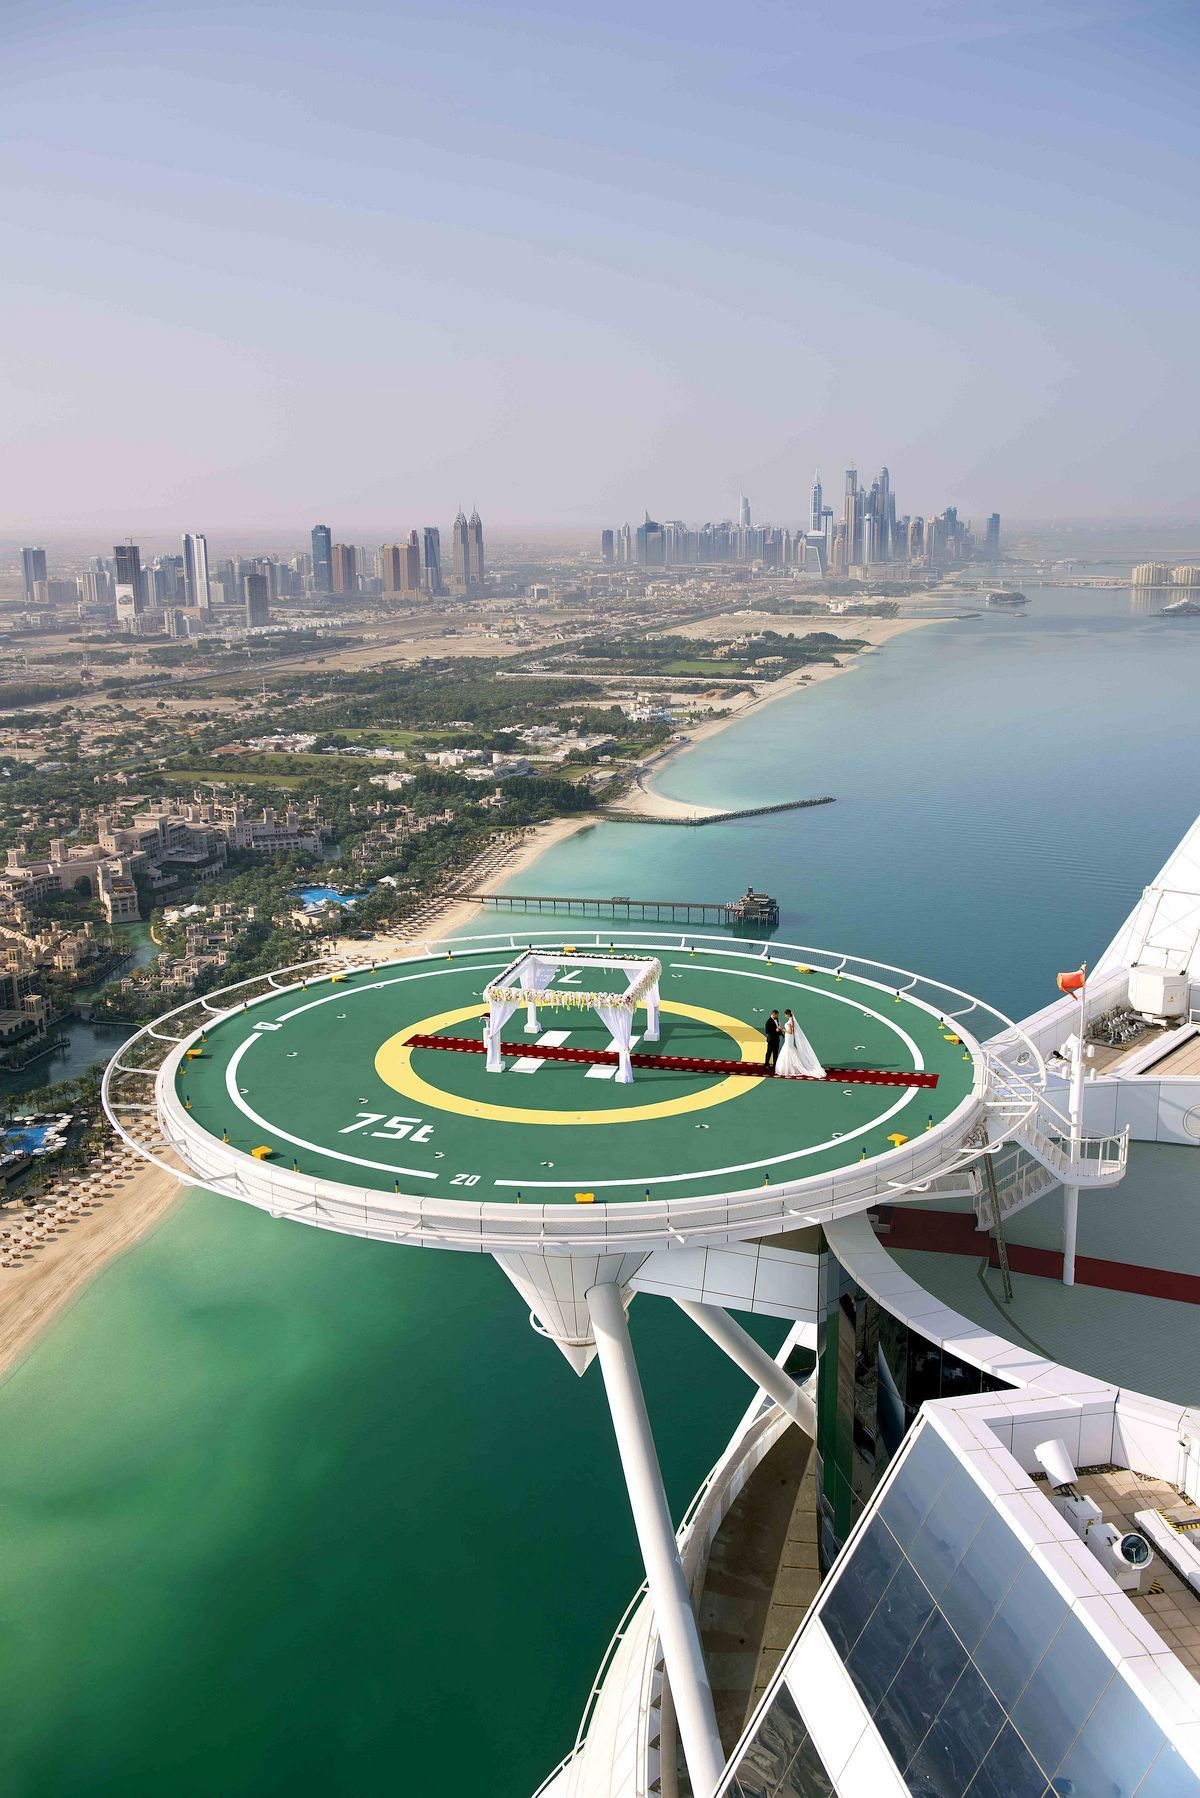 stackliving-most-beautiful-hotels-04-Burj-Al-Arab-Dubai-02-helicopter